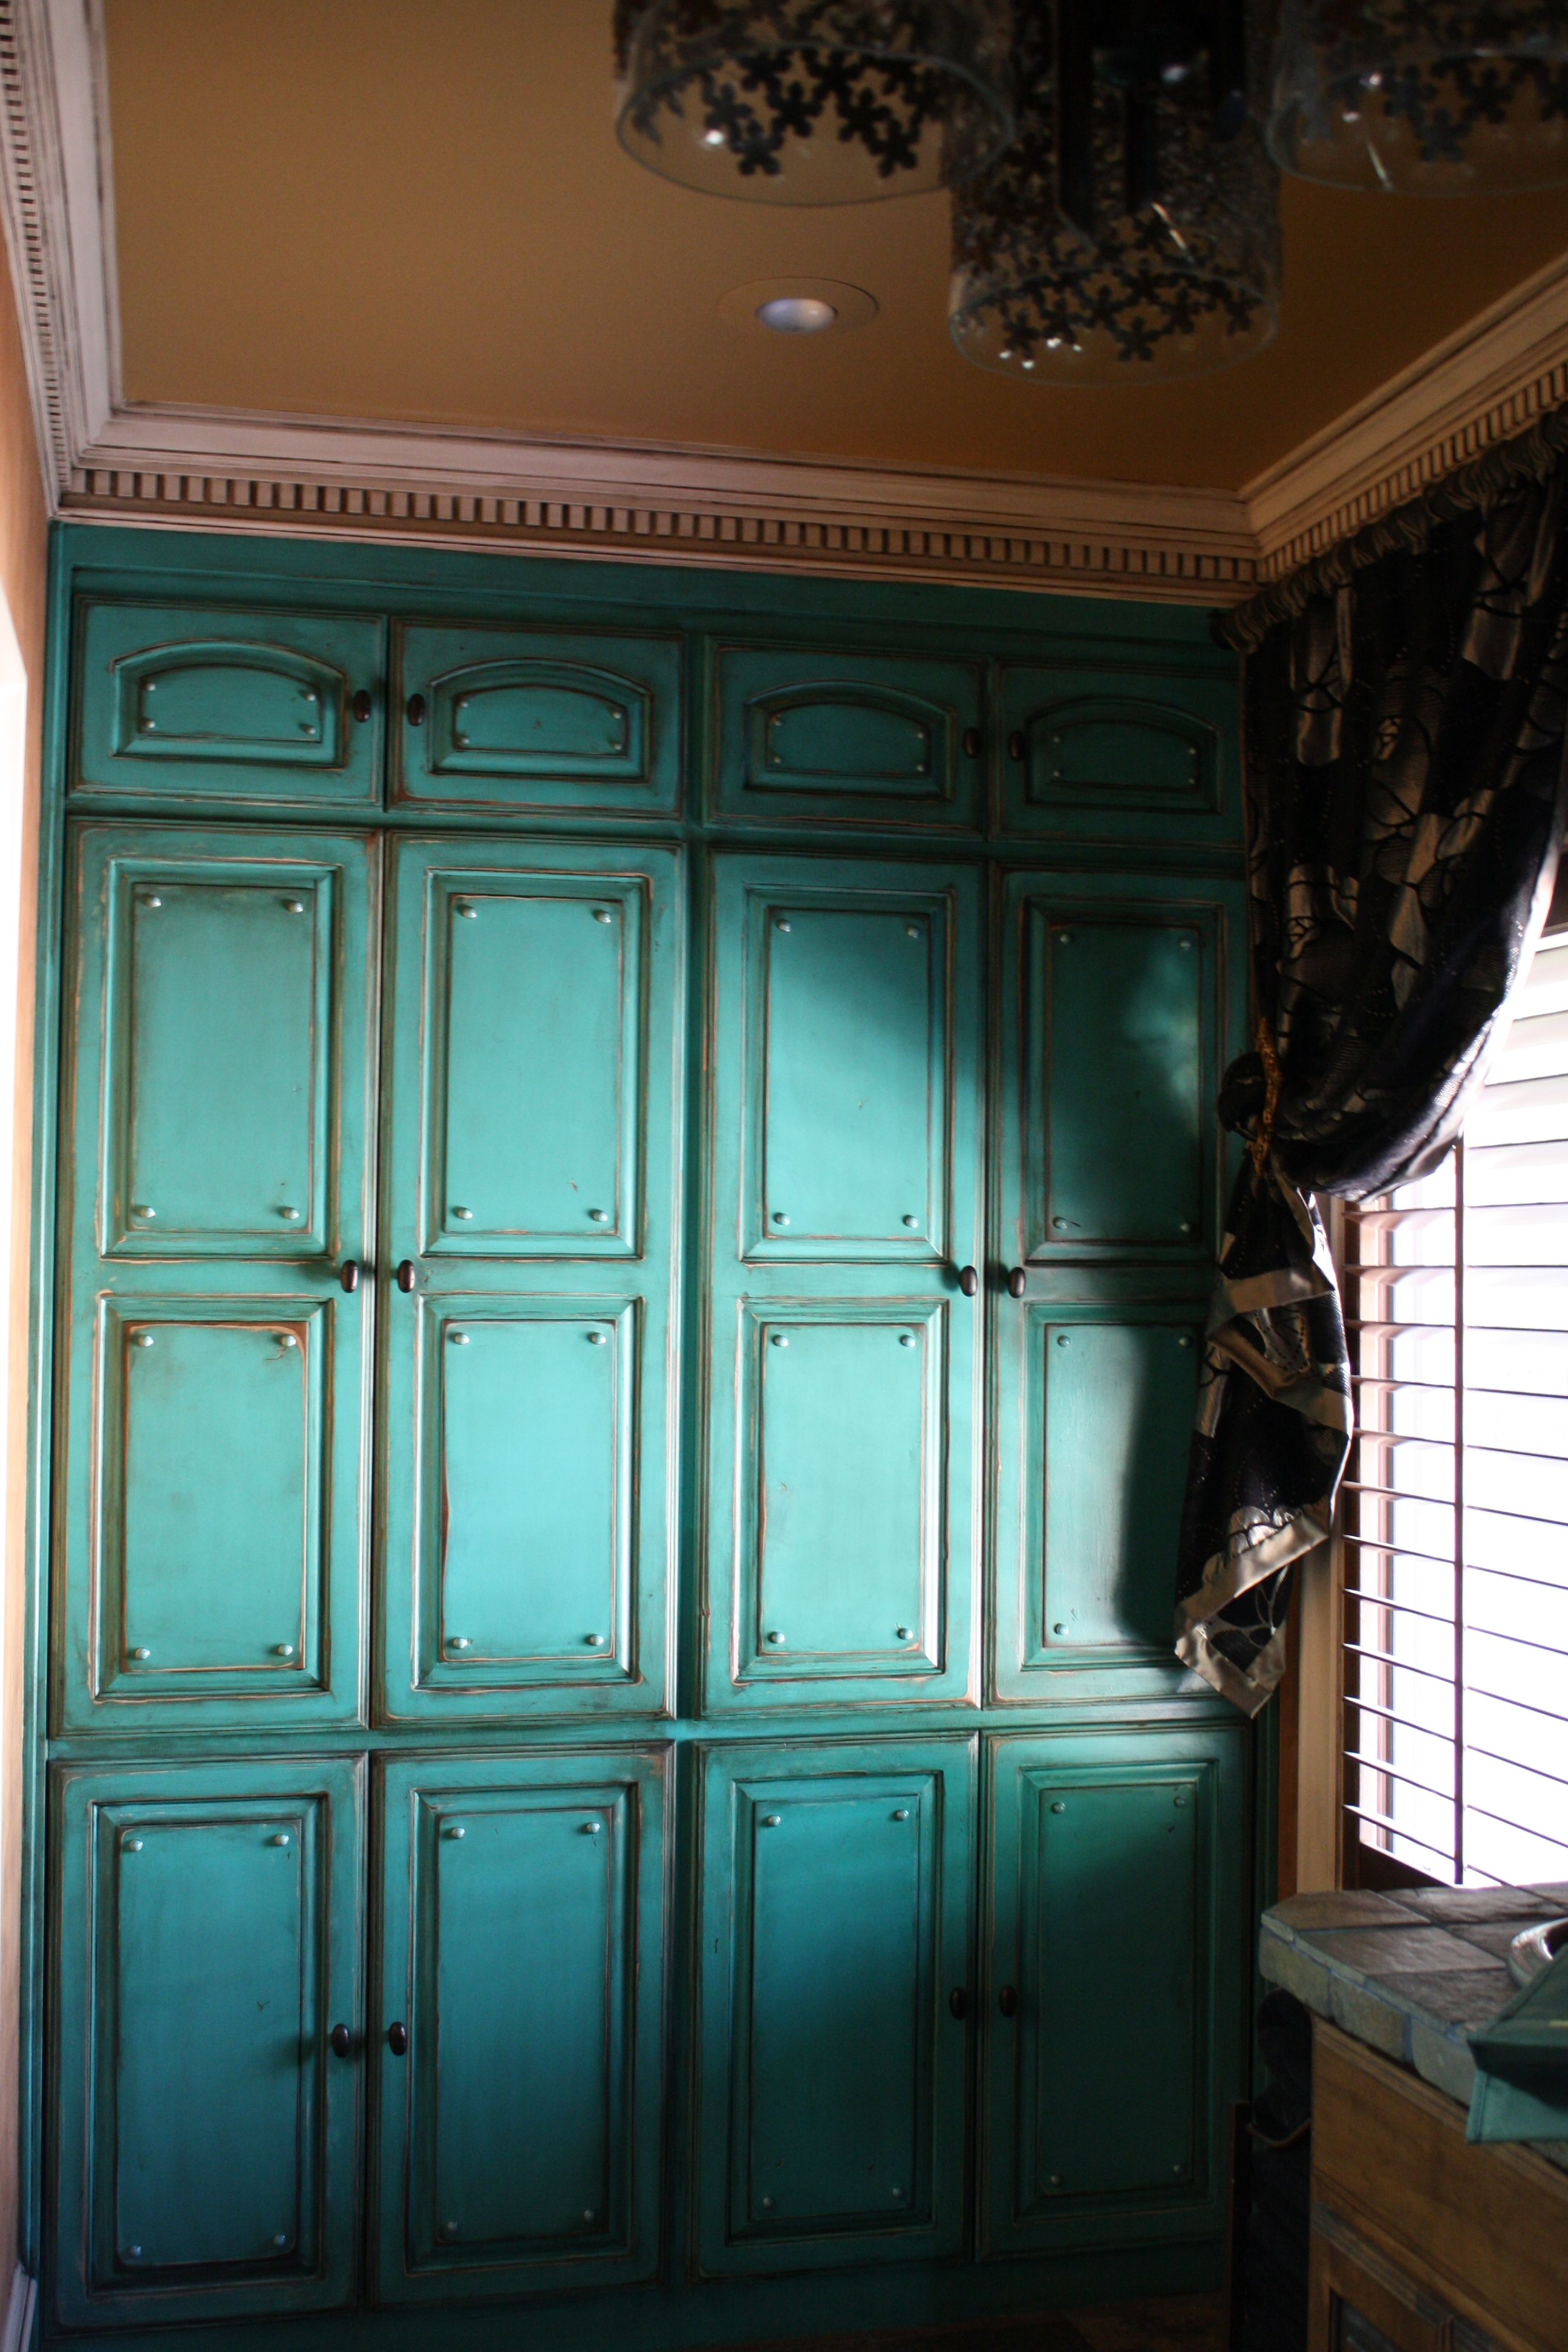 Distressed Turquoise Bank Of Cabinets Turquoise Nail Heads Shabby Chic Kitchen Painting Cabinets Painting Kitchen Cabinets